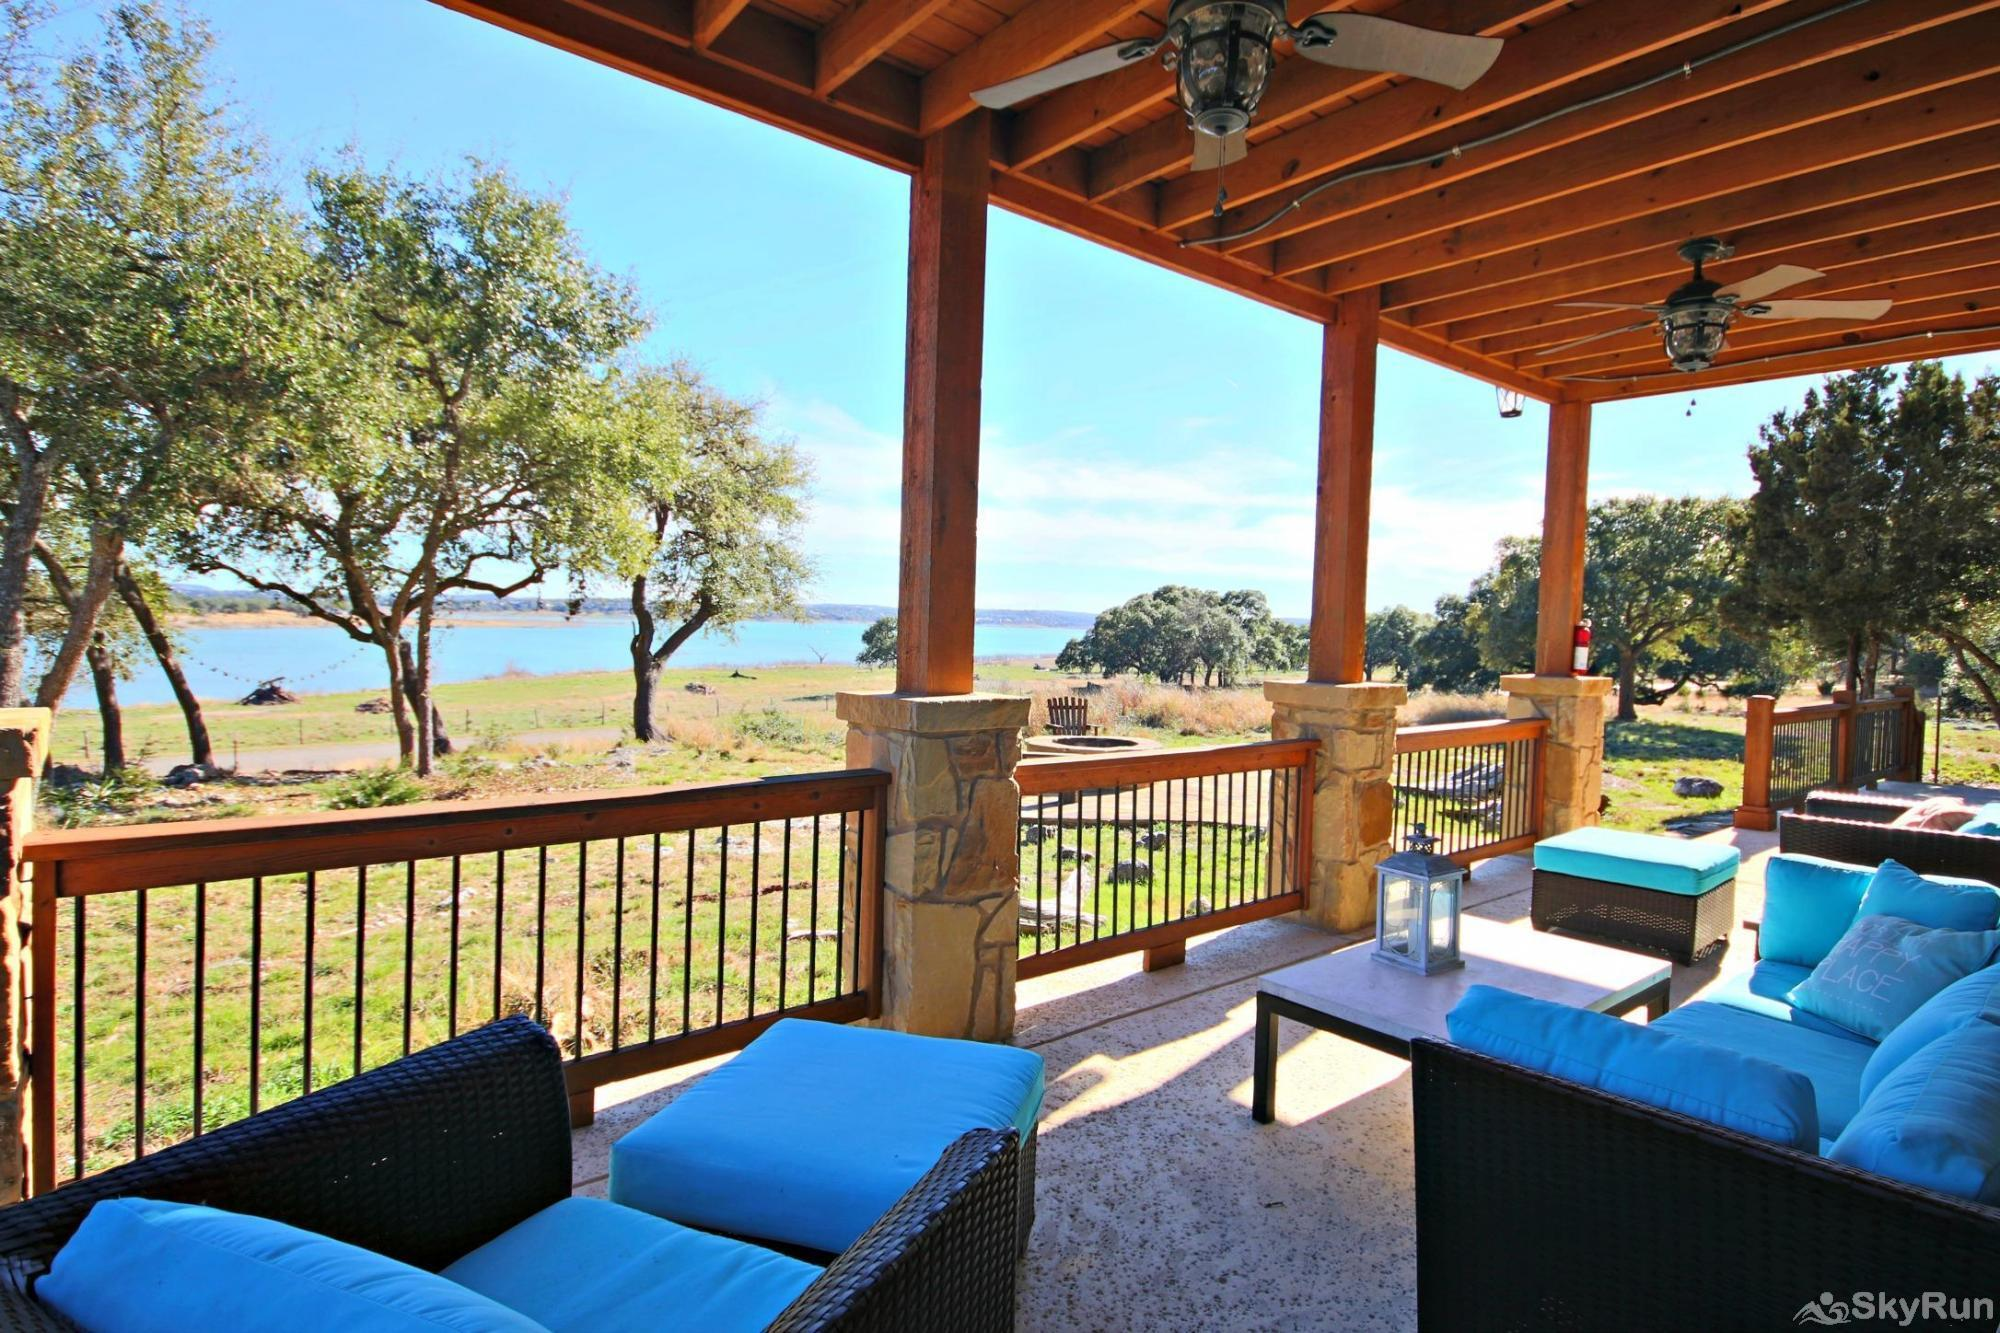 WINE DOWN LAKE ESCAPE Enjoy Canyon Lake from the Lower Level Patio